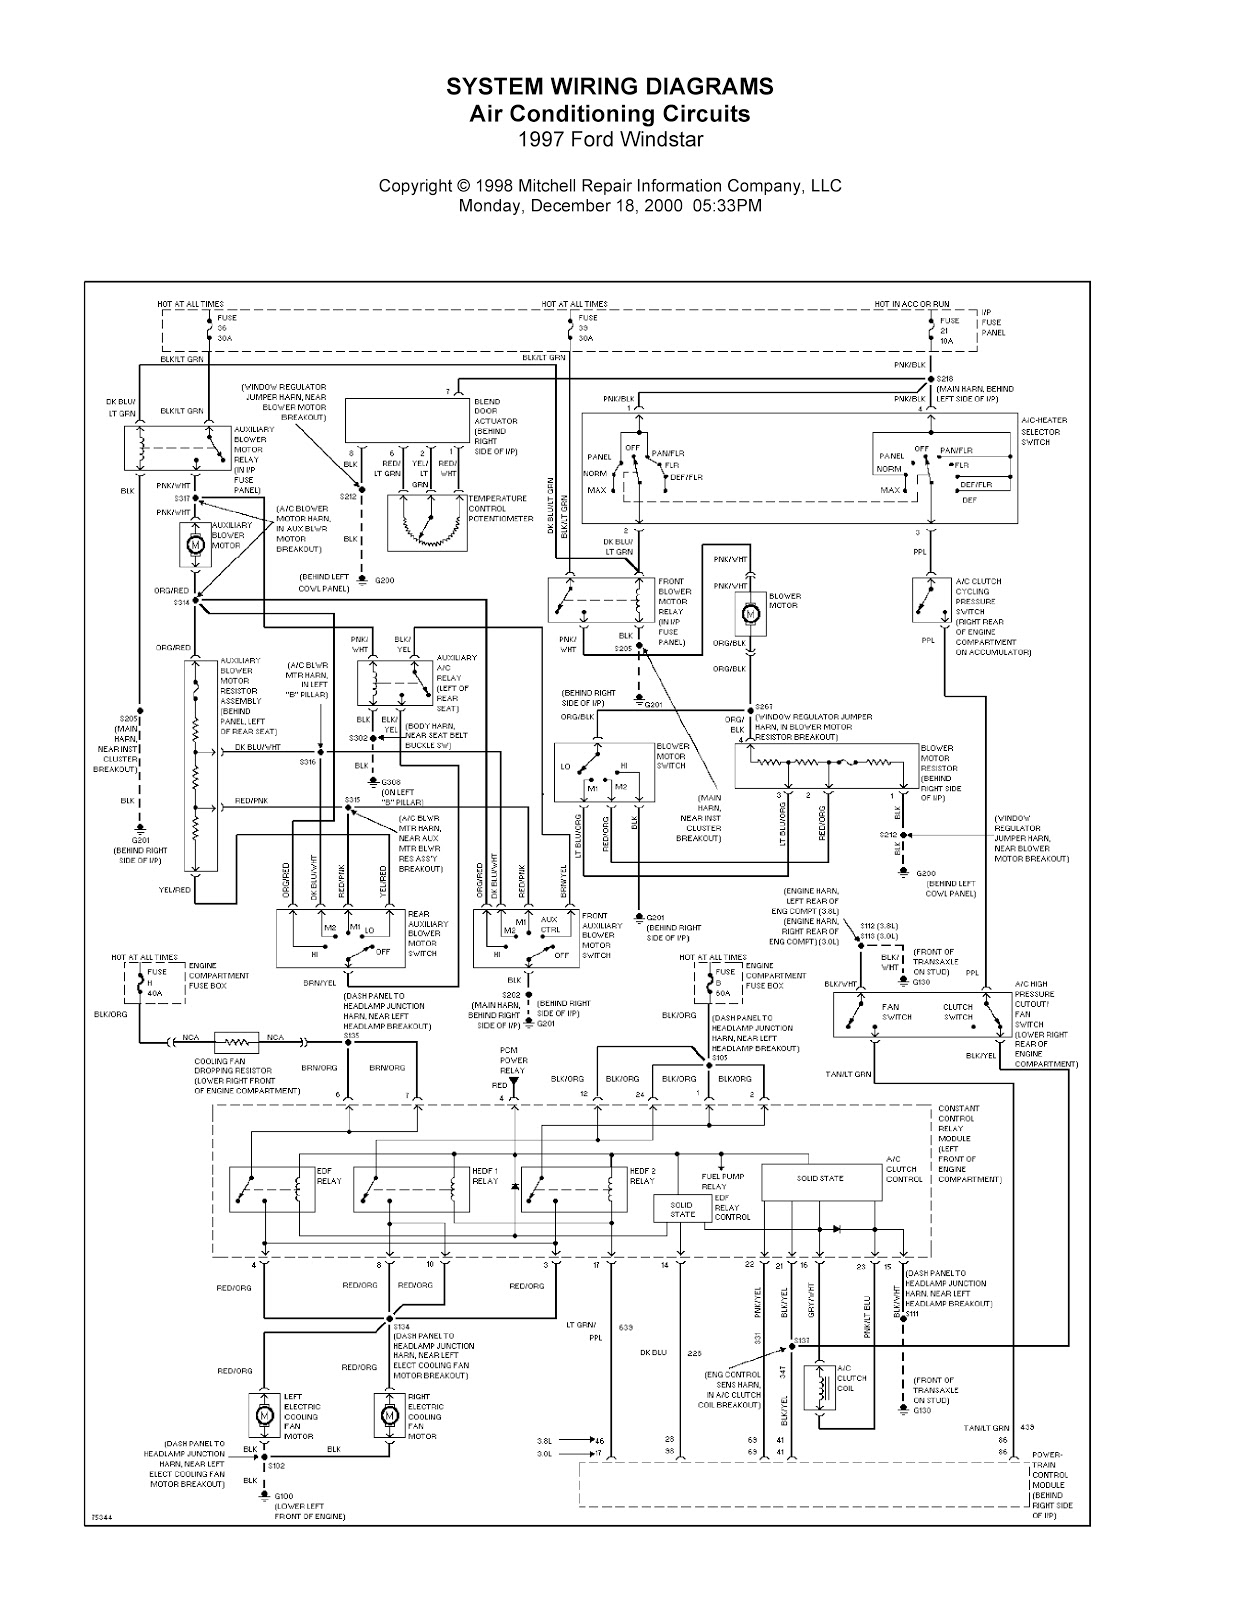 0001 1997 ford windstar complete system wiring diagrams wiring 1999 ford explorer rear wiper wiring diagram at mr168.co